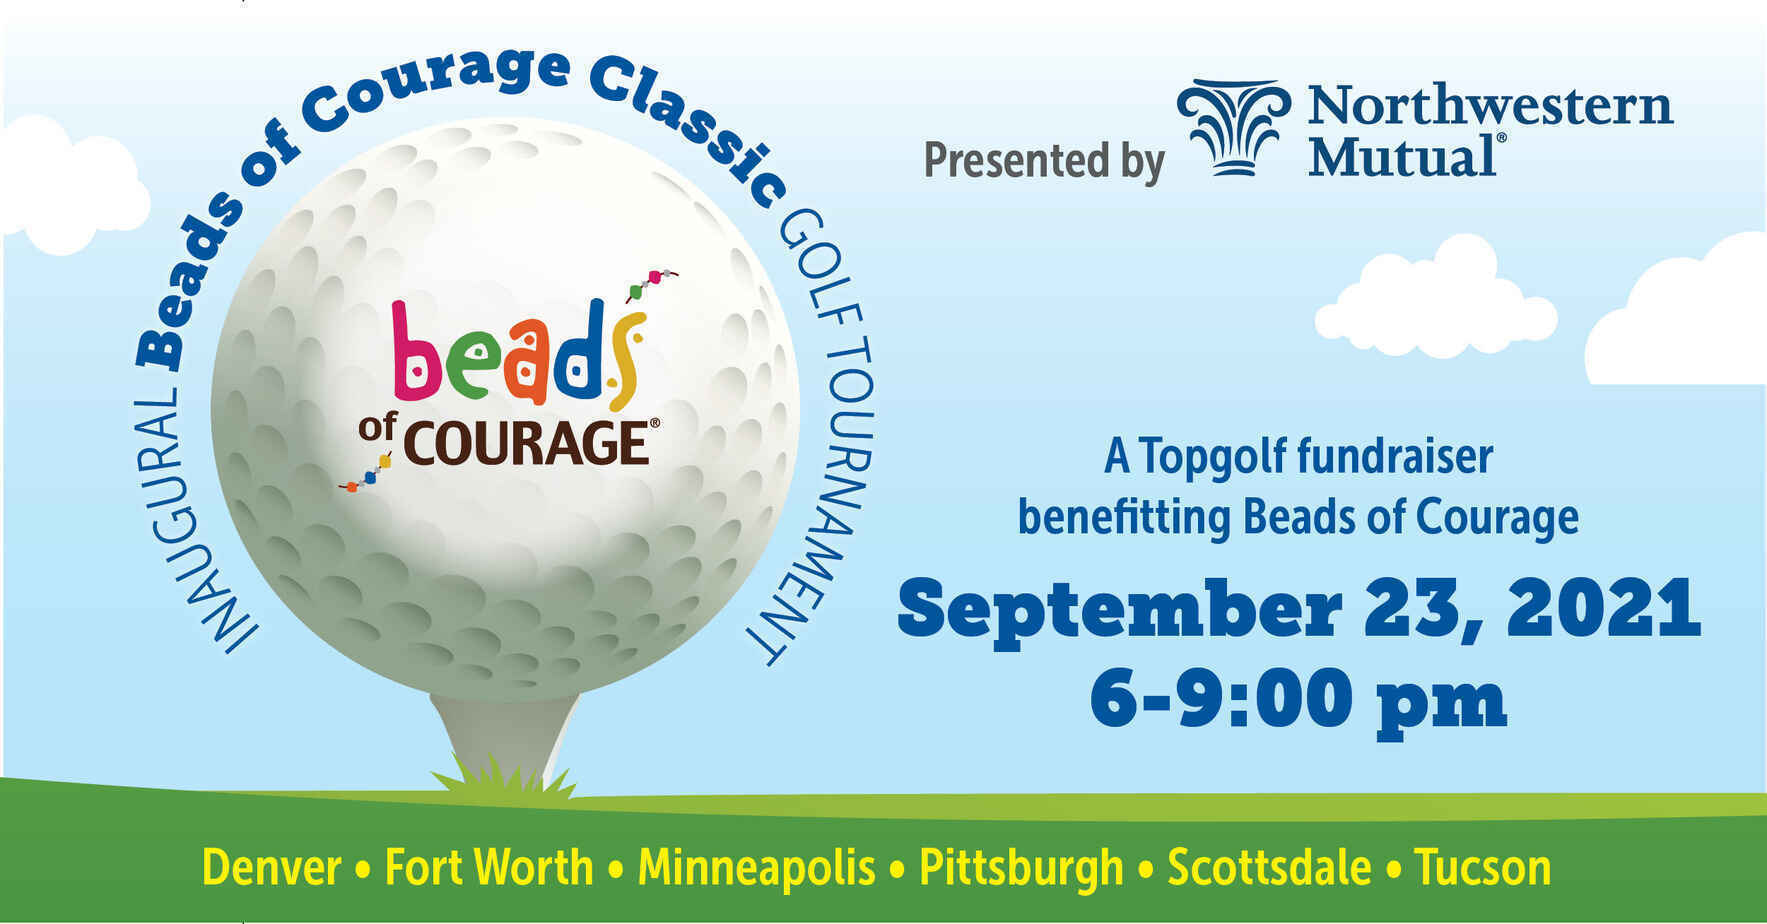 2021 Pittsburgh Beads of Courage Classic Golf Tournament image